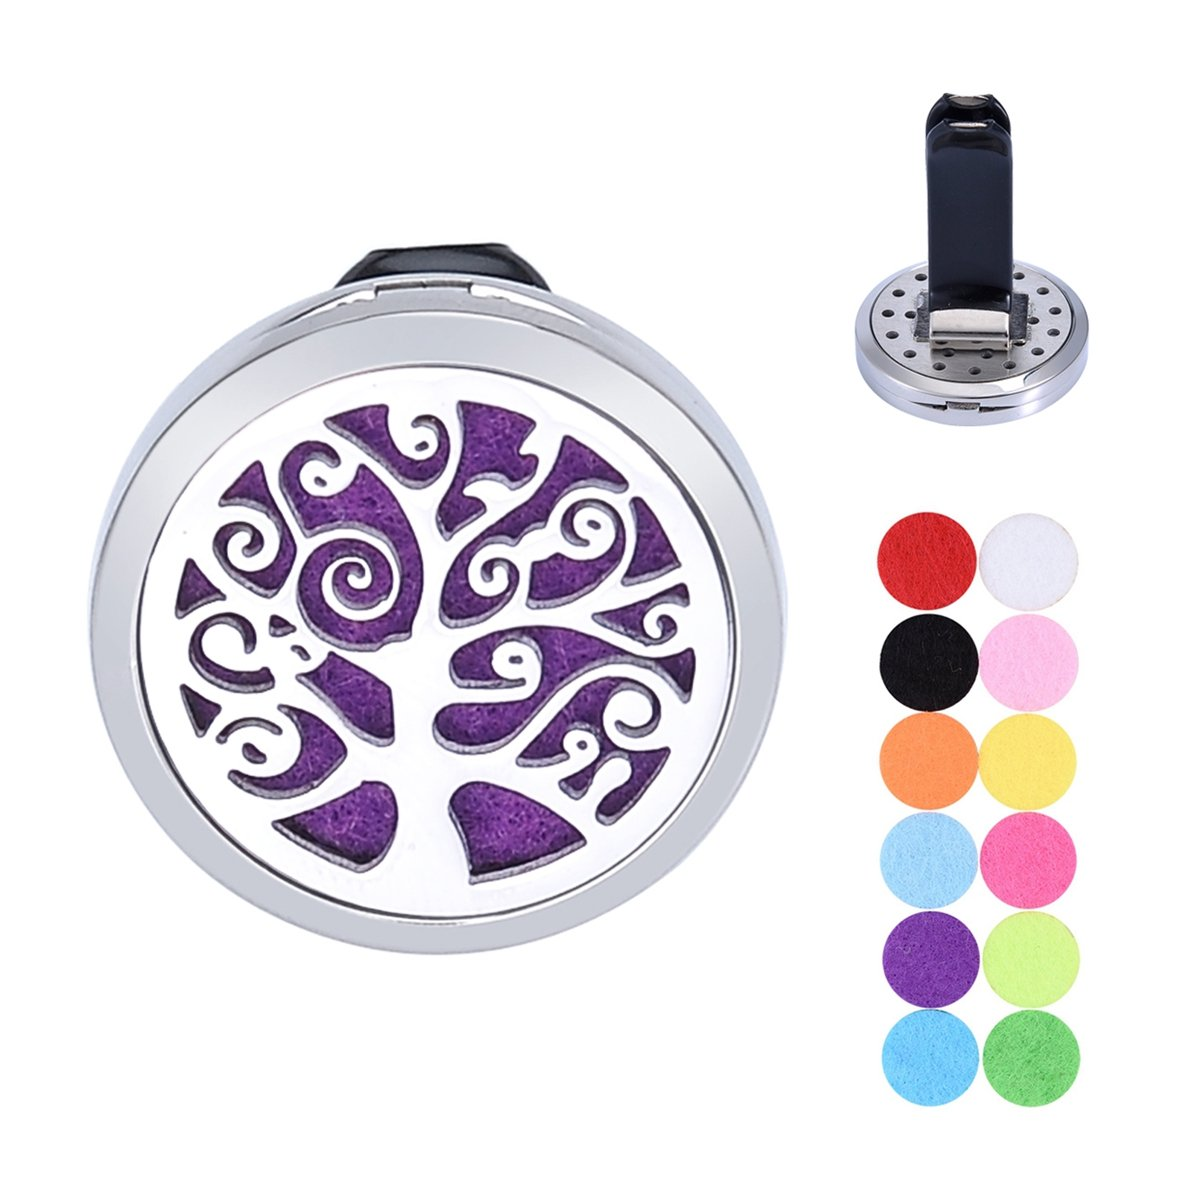 Tree of Life Car Air Freshener Aromatherapy Essential Oil Diffuser Vent Clip Stainless Steel Locket with 12 Felt Pads Supreme glory SGto-B227847